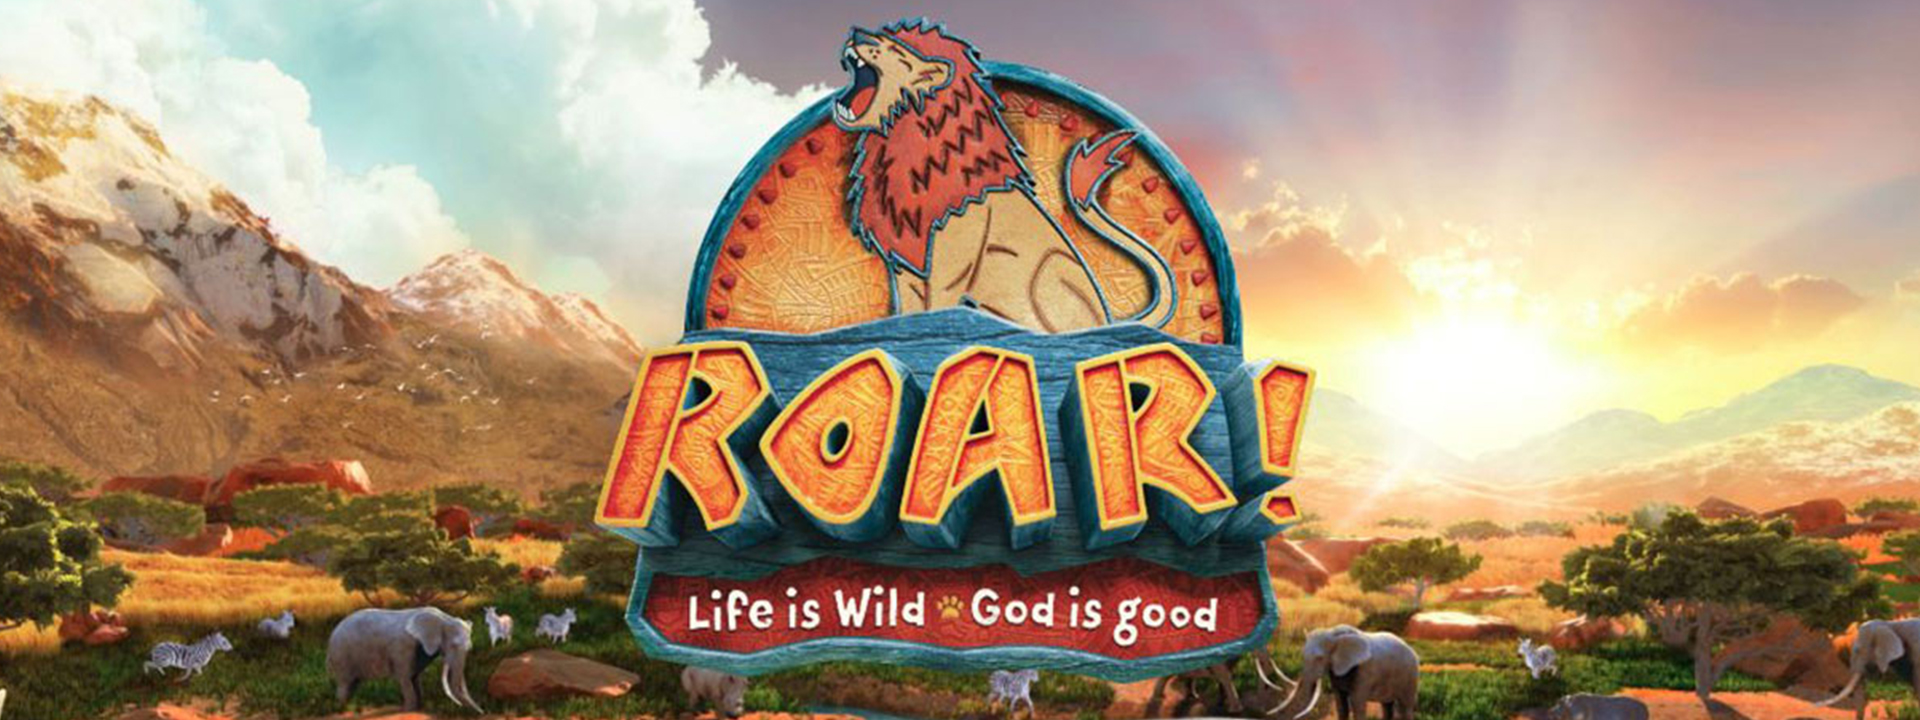 ROAR-VBS-featured.jpg